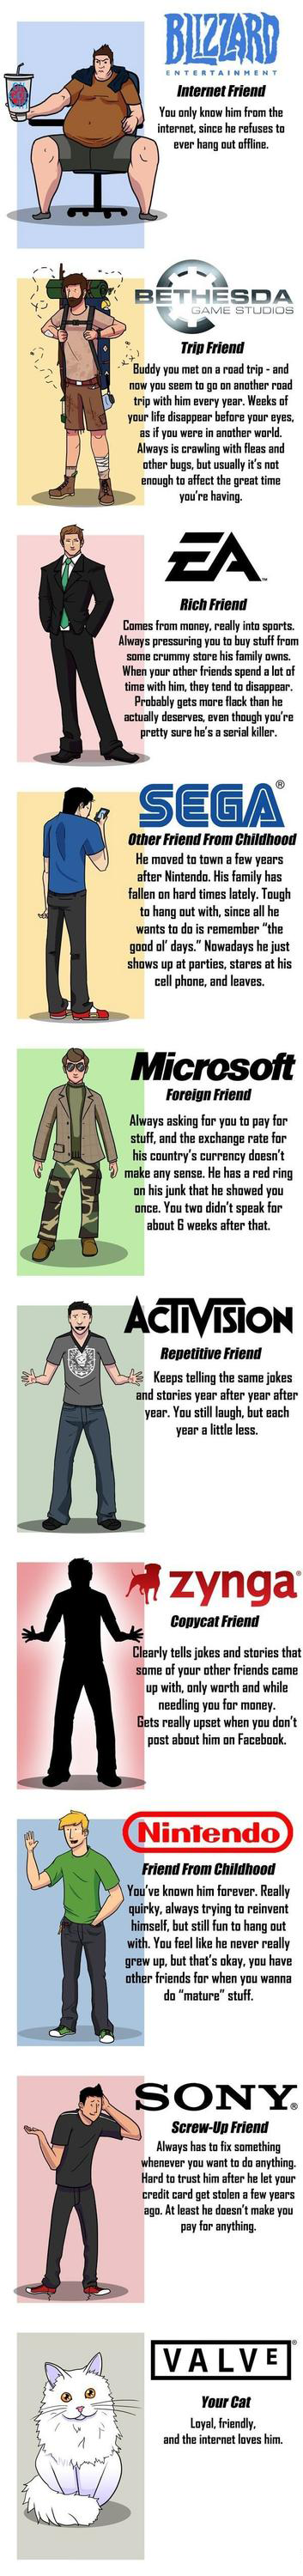 Video Game Friends Infographic